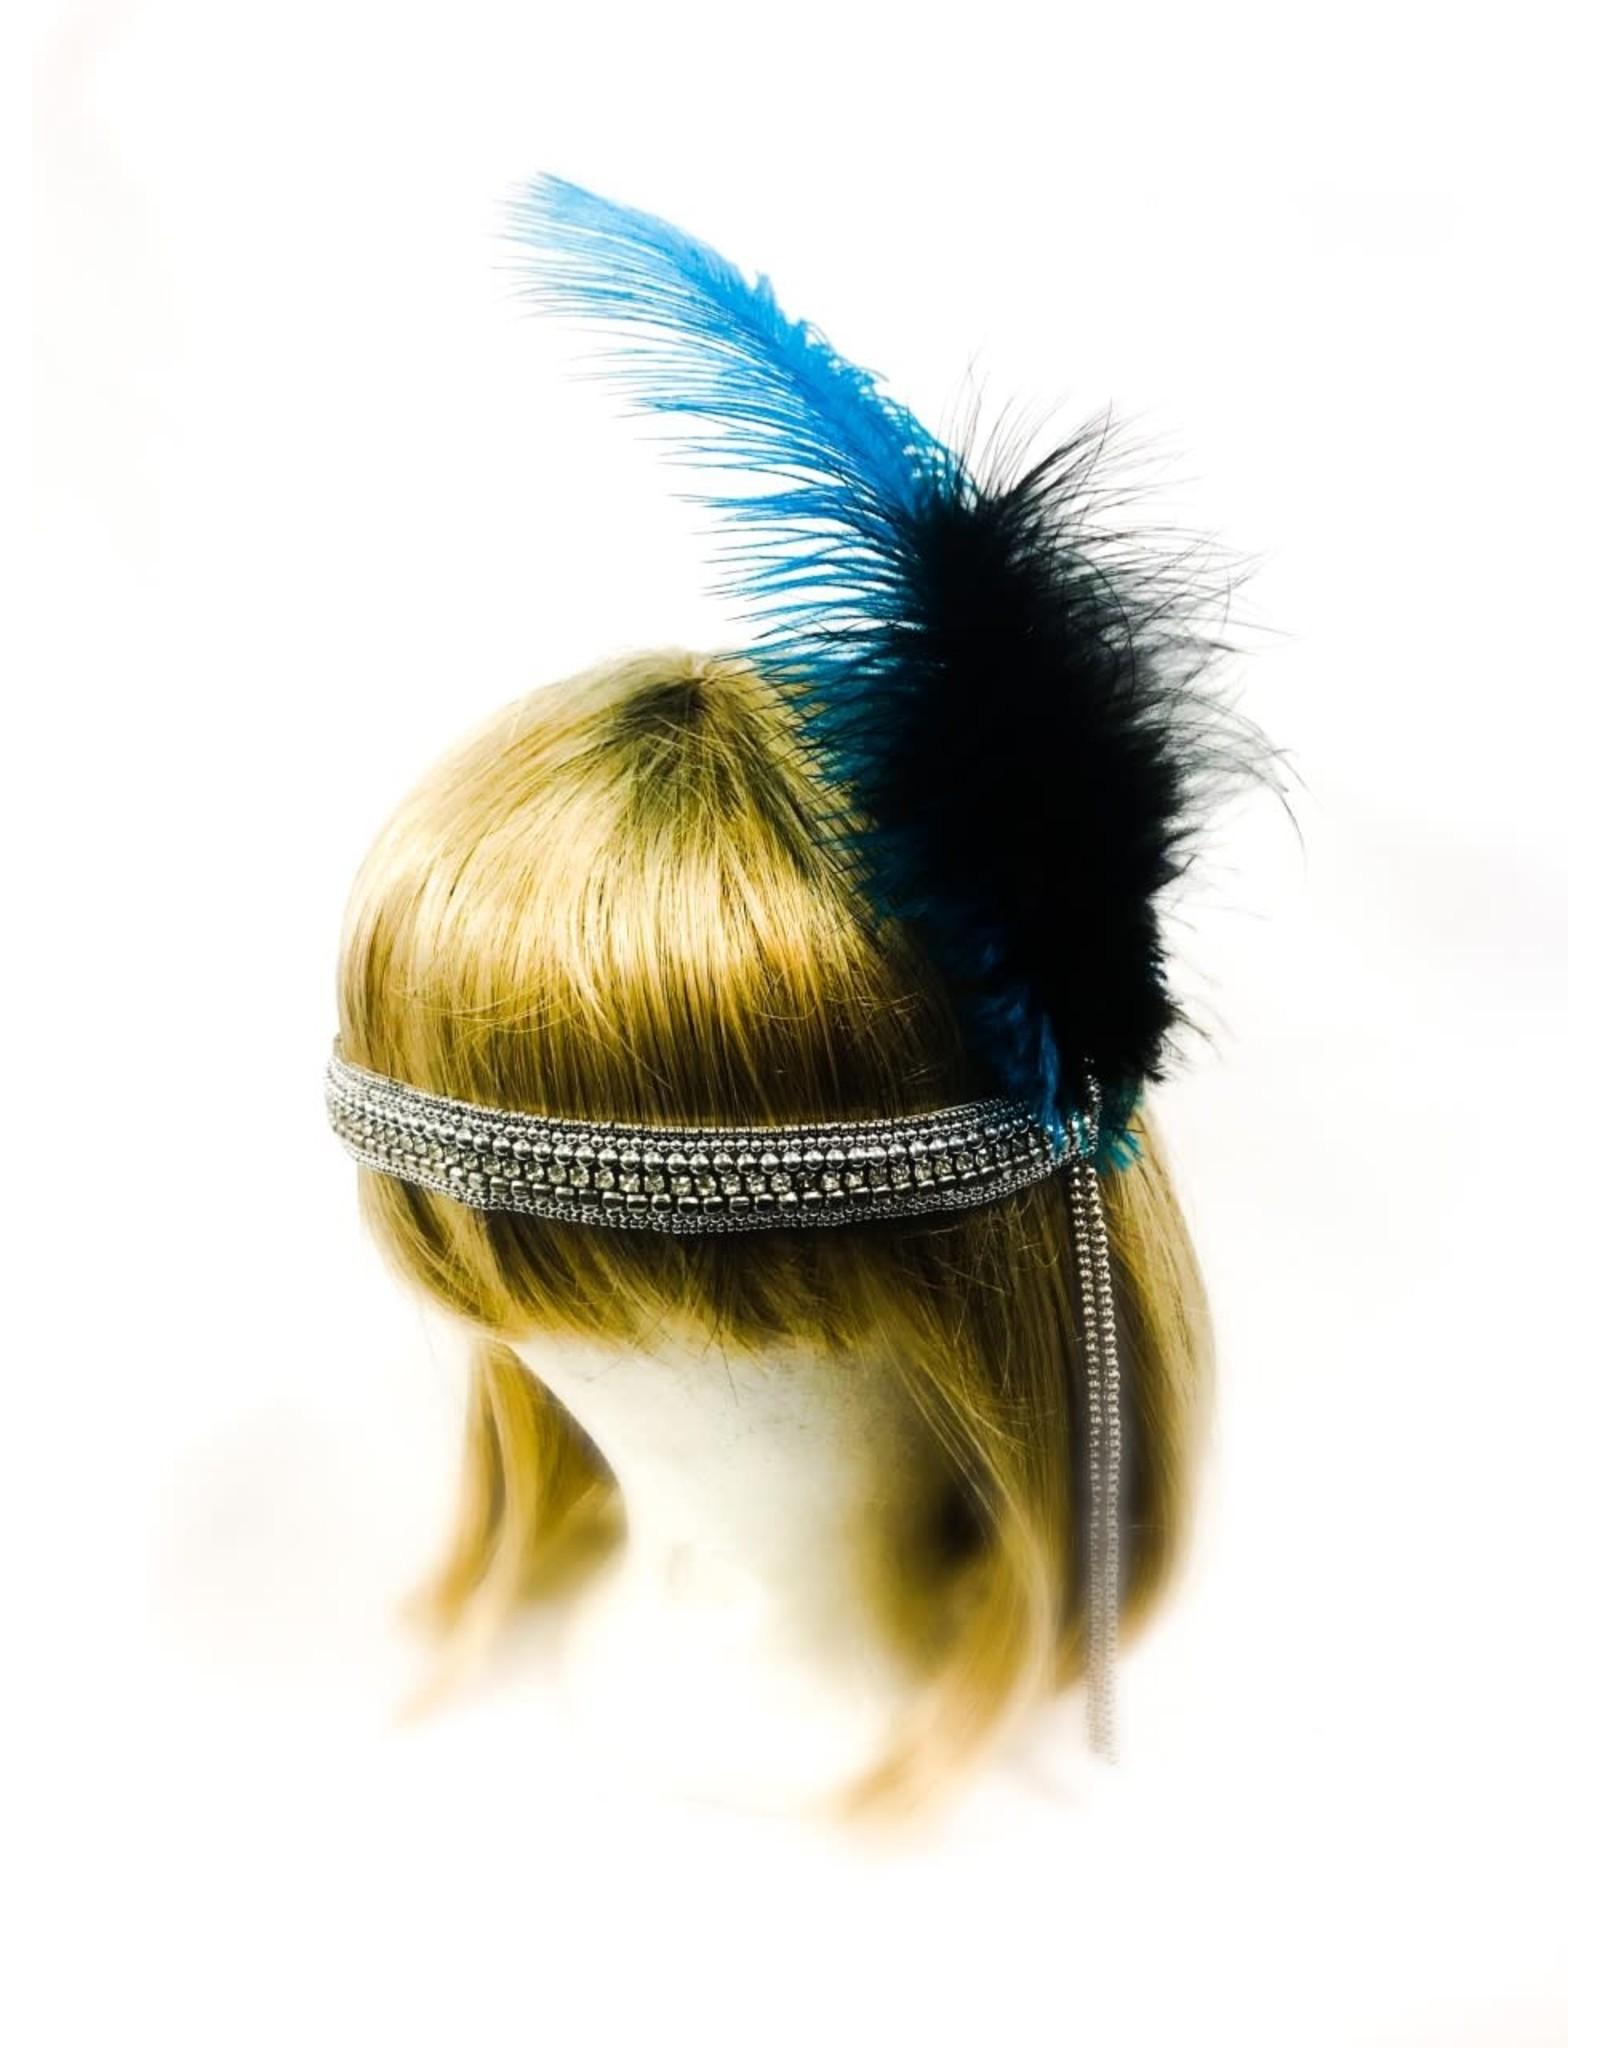 Karries Kostumes Crystal Headband with Blue and Black Feathers